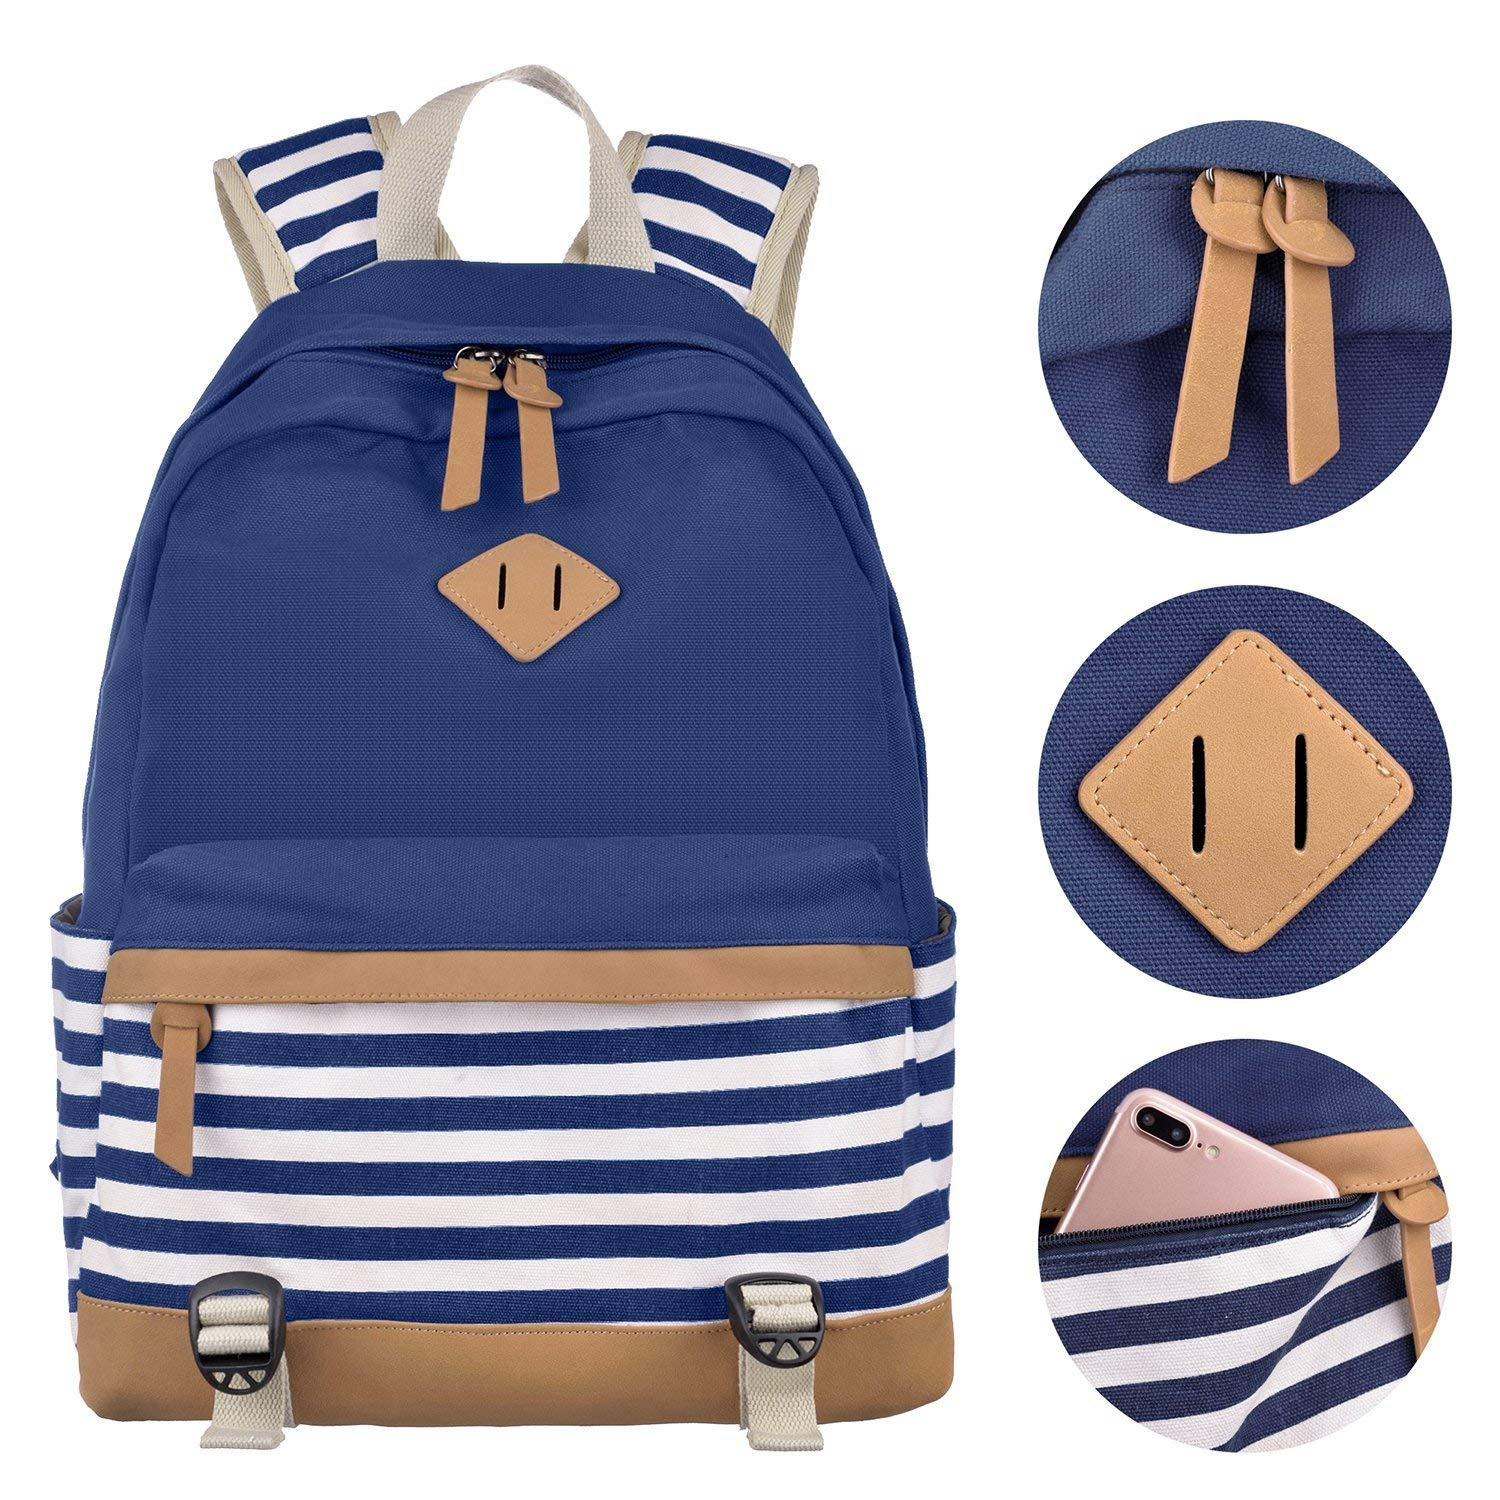 Amazon.com: Girls School Backpack Striped Canvas Backpack High School Bag Women Casual College Laptop Backpack Coin Purse Blue: Clothing